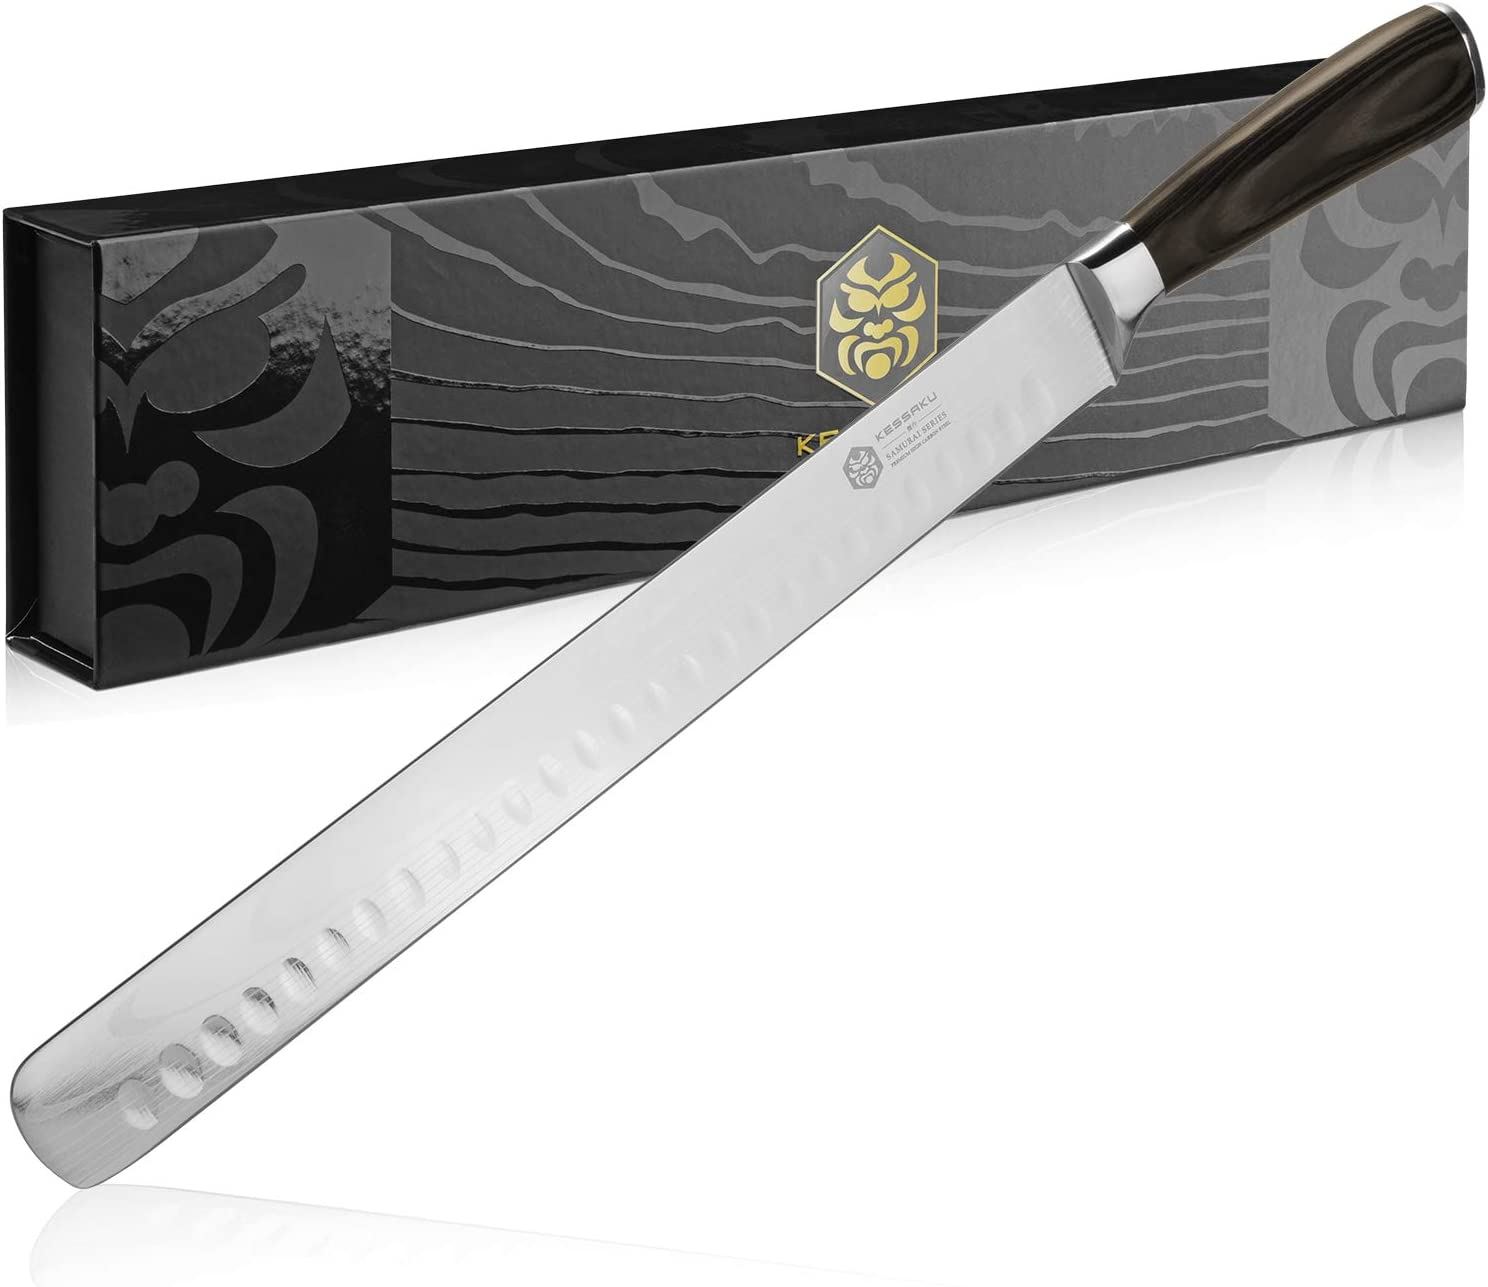 Kessaku Carving Knife